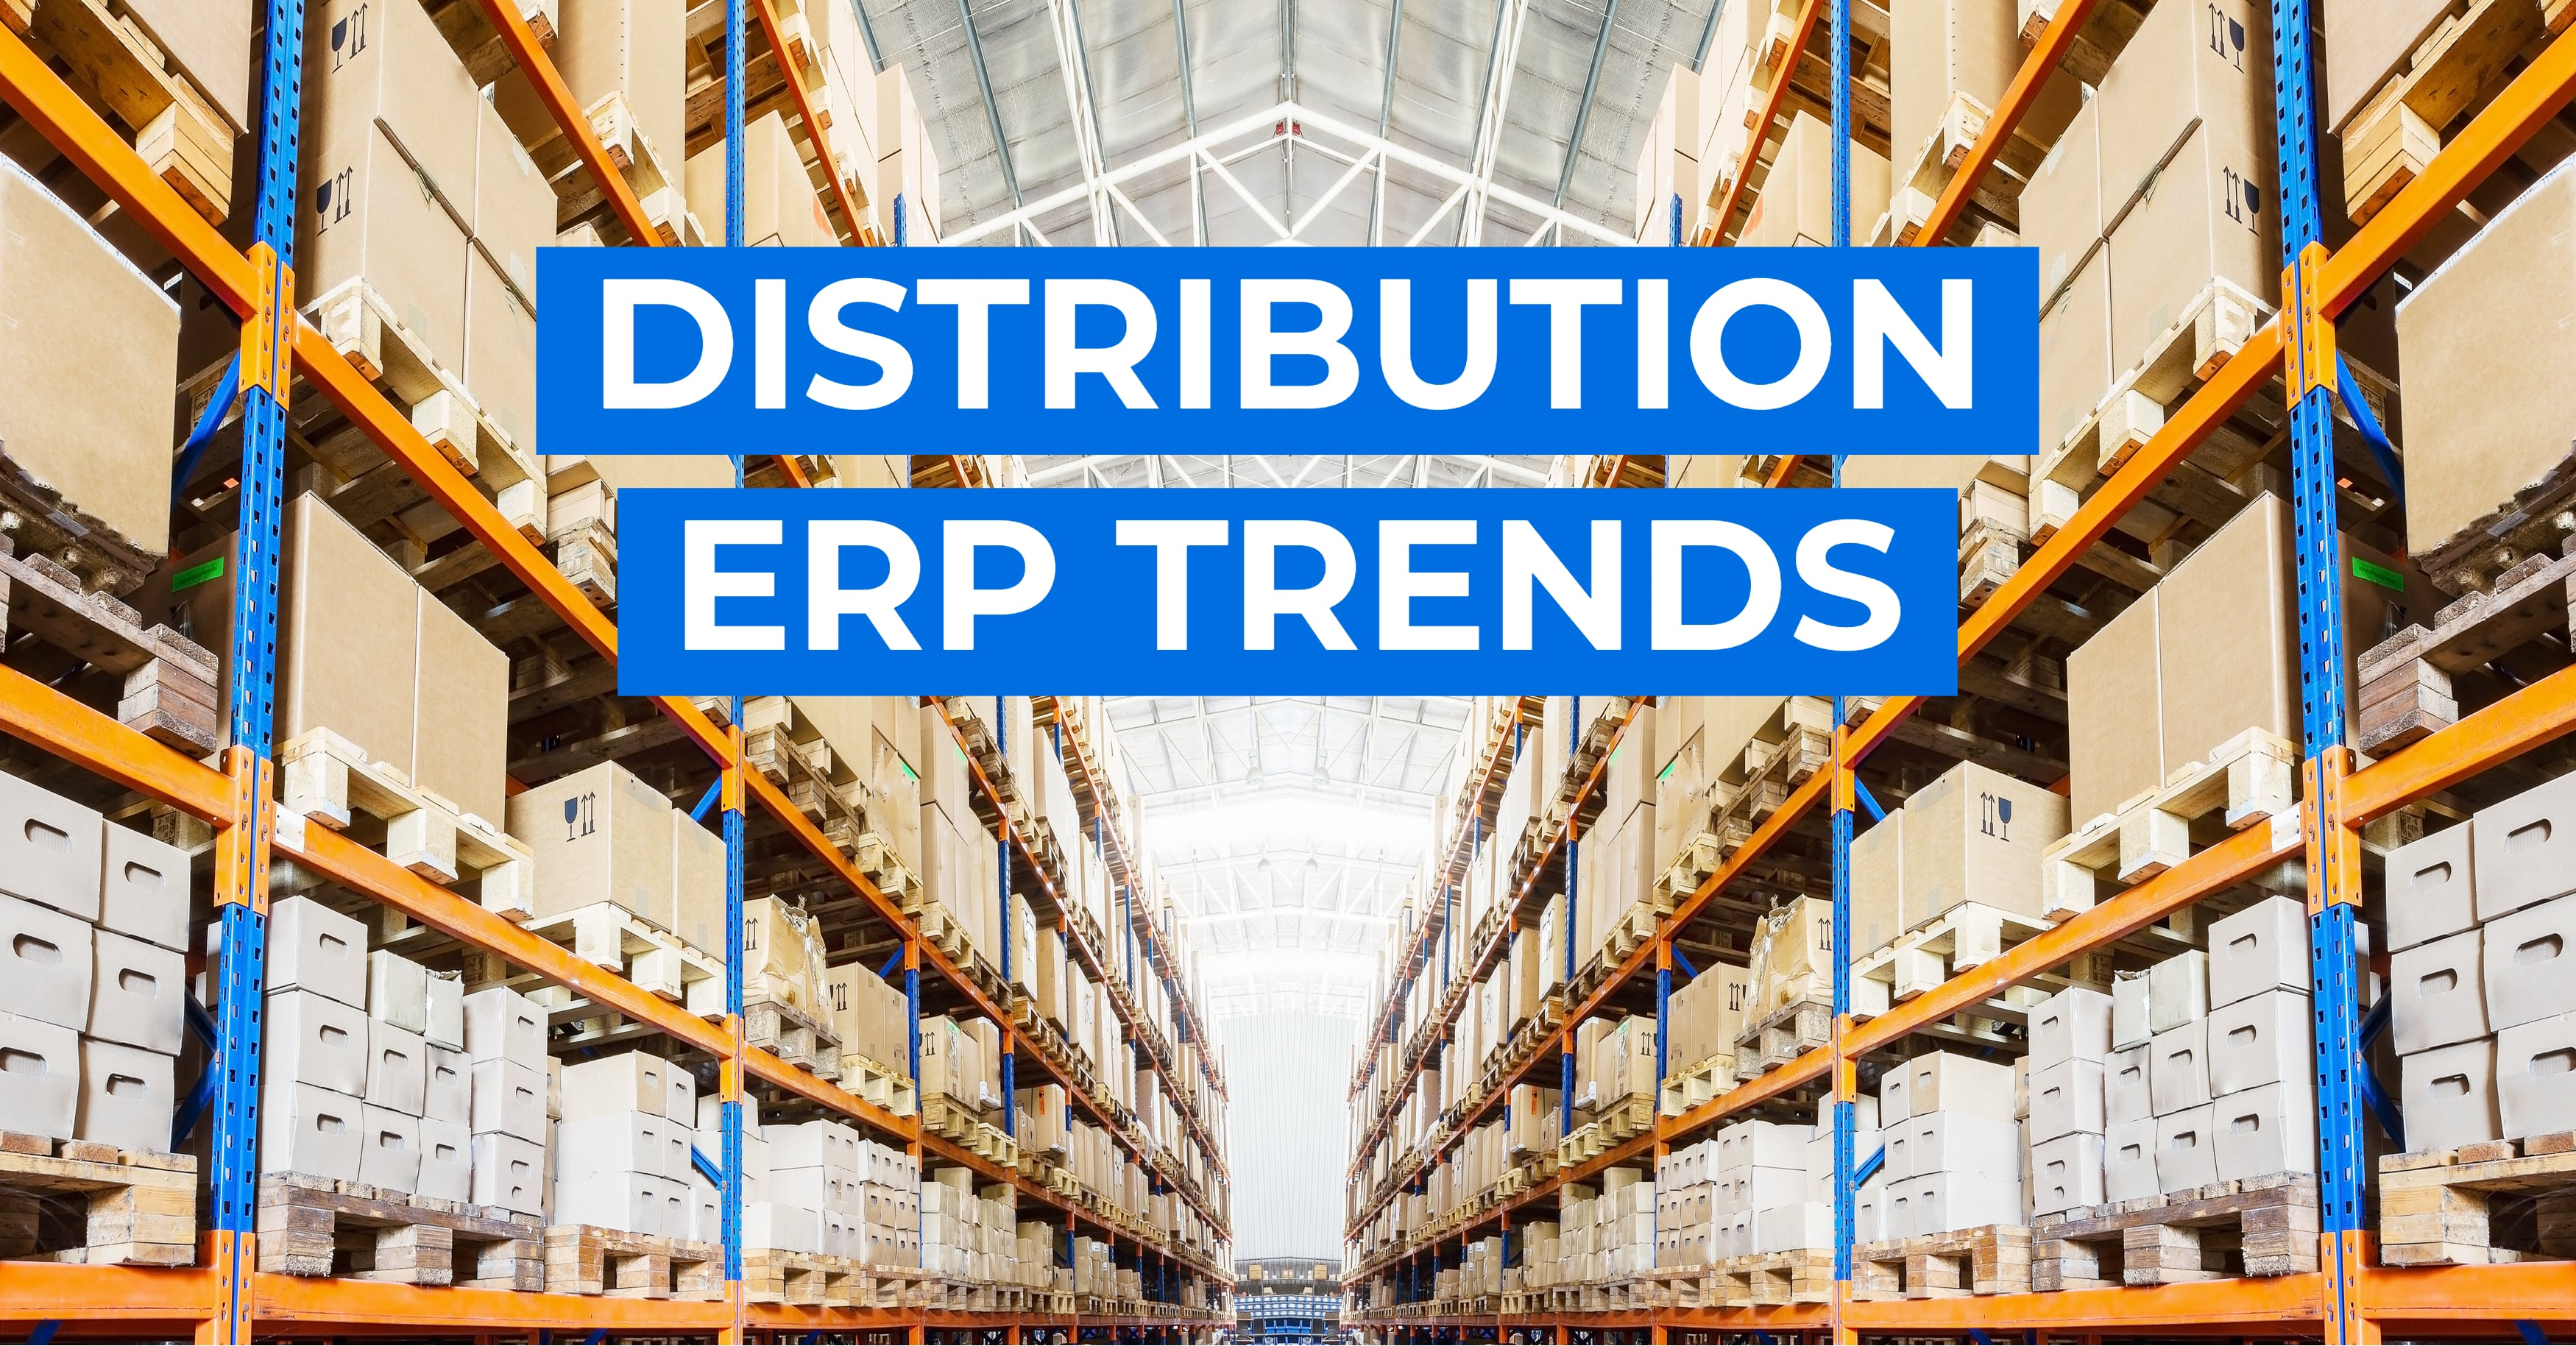 3 Major Trends in Distribution ERP